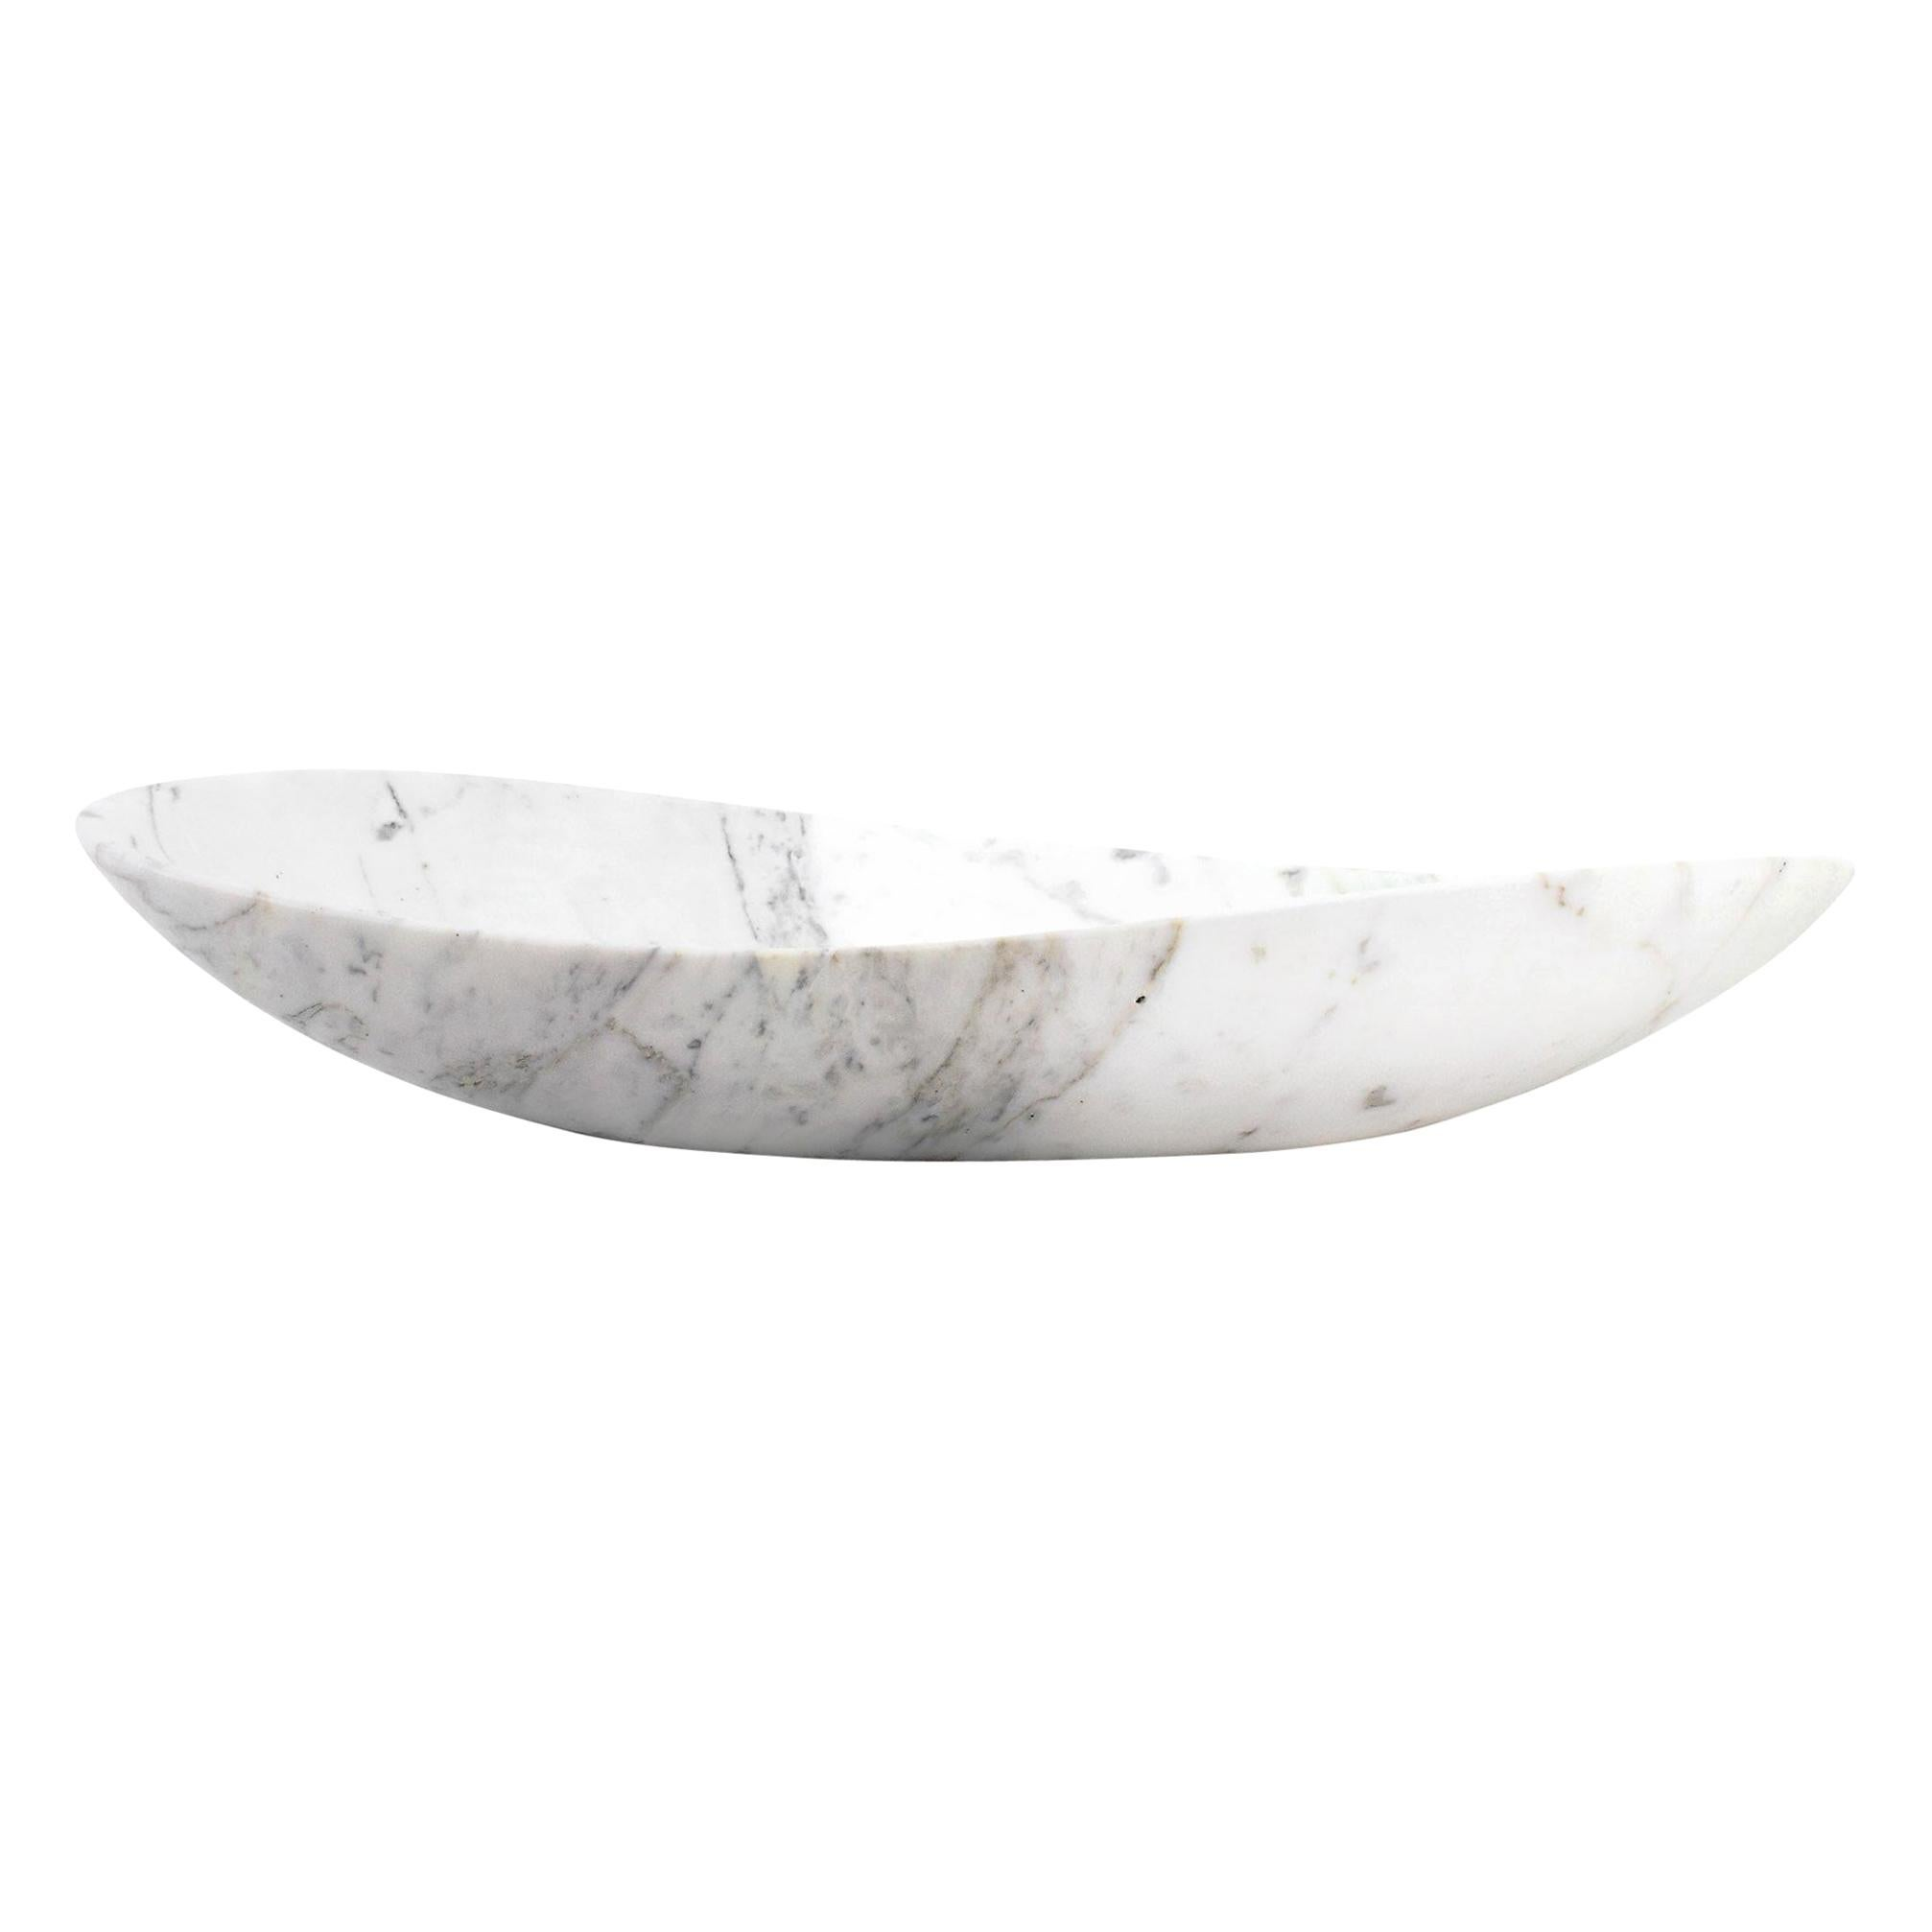 Fruit Bowl Vase in White Calacatta Marble Contemporary Design by Pieruga Marble